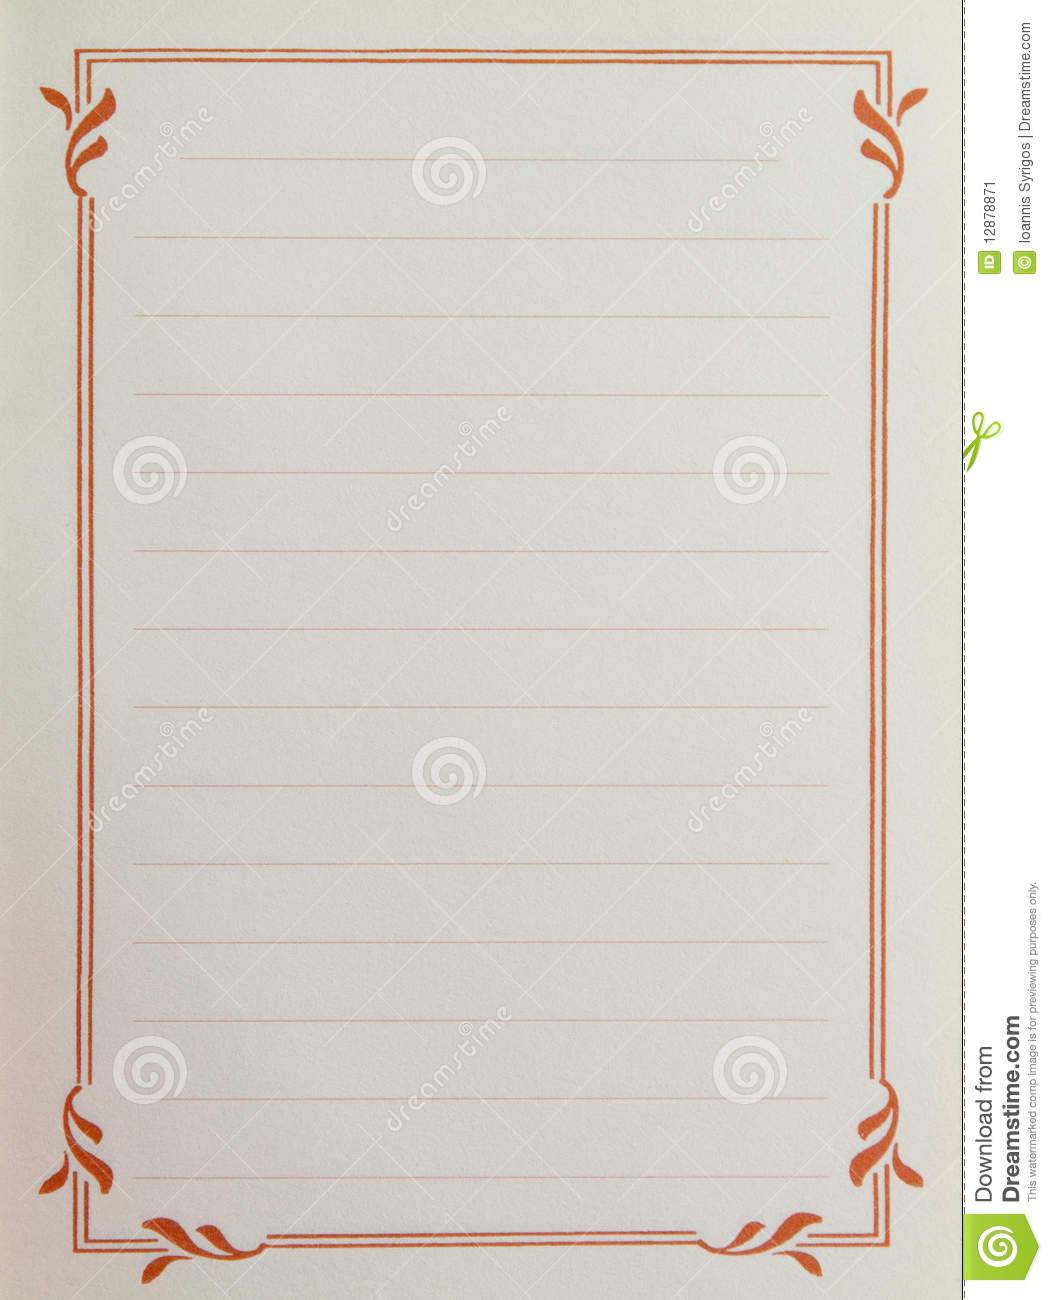 Sheet of lined note paper with a vintage pattern orange border around ...